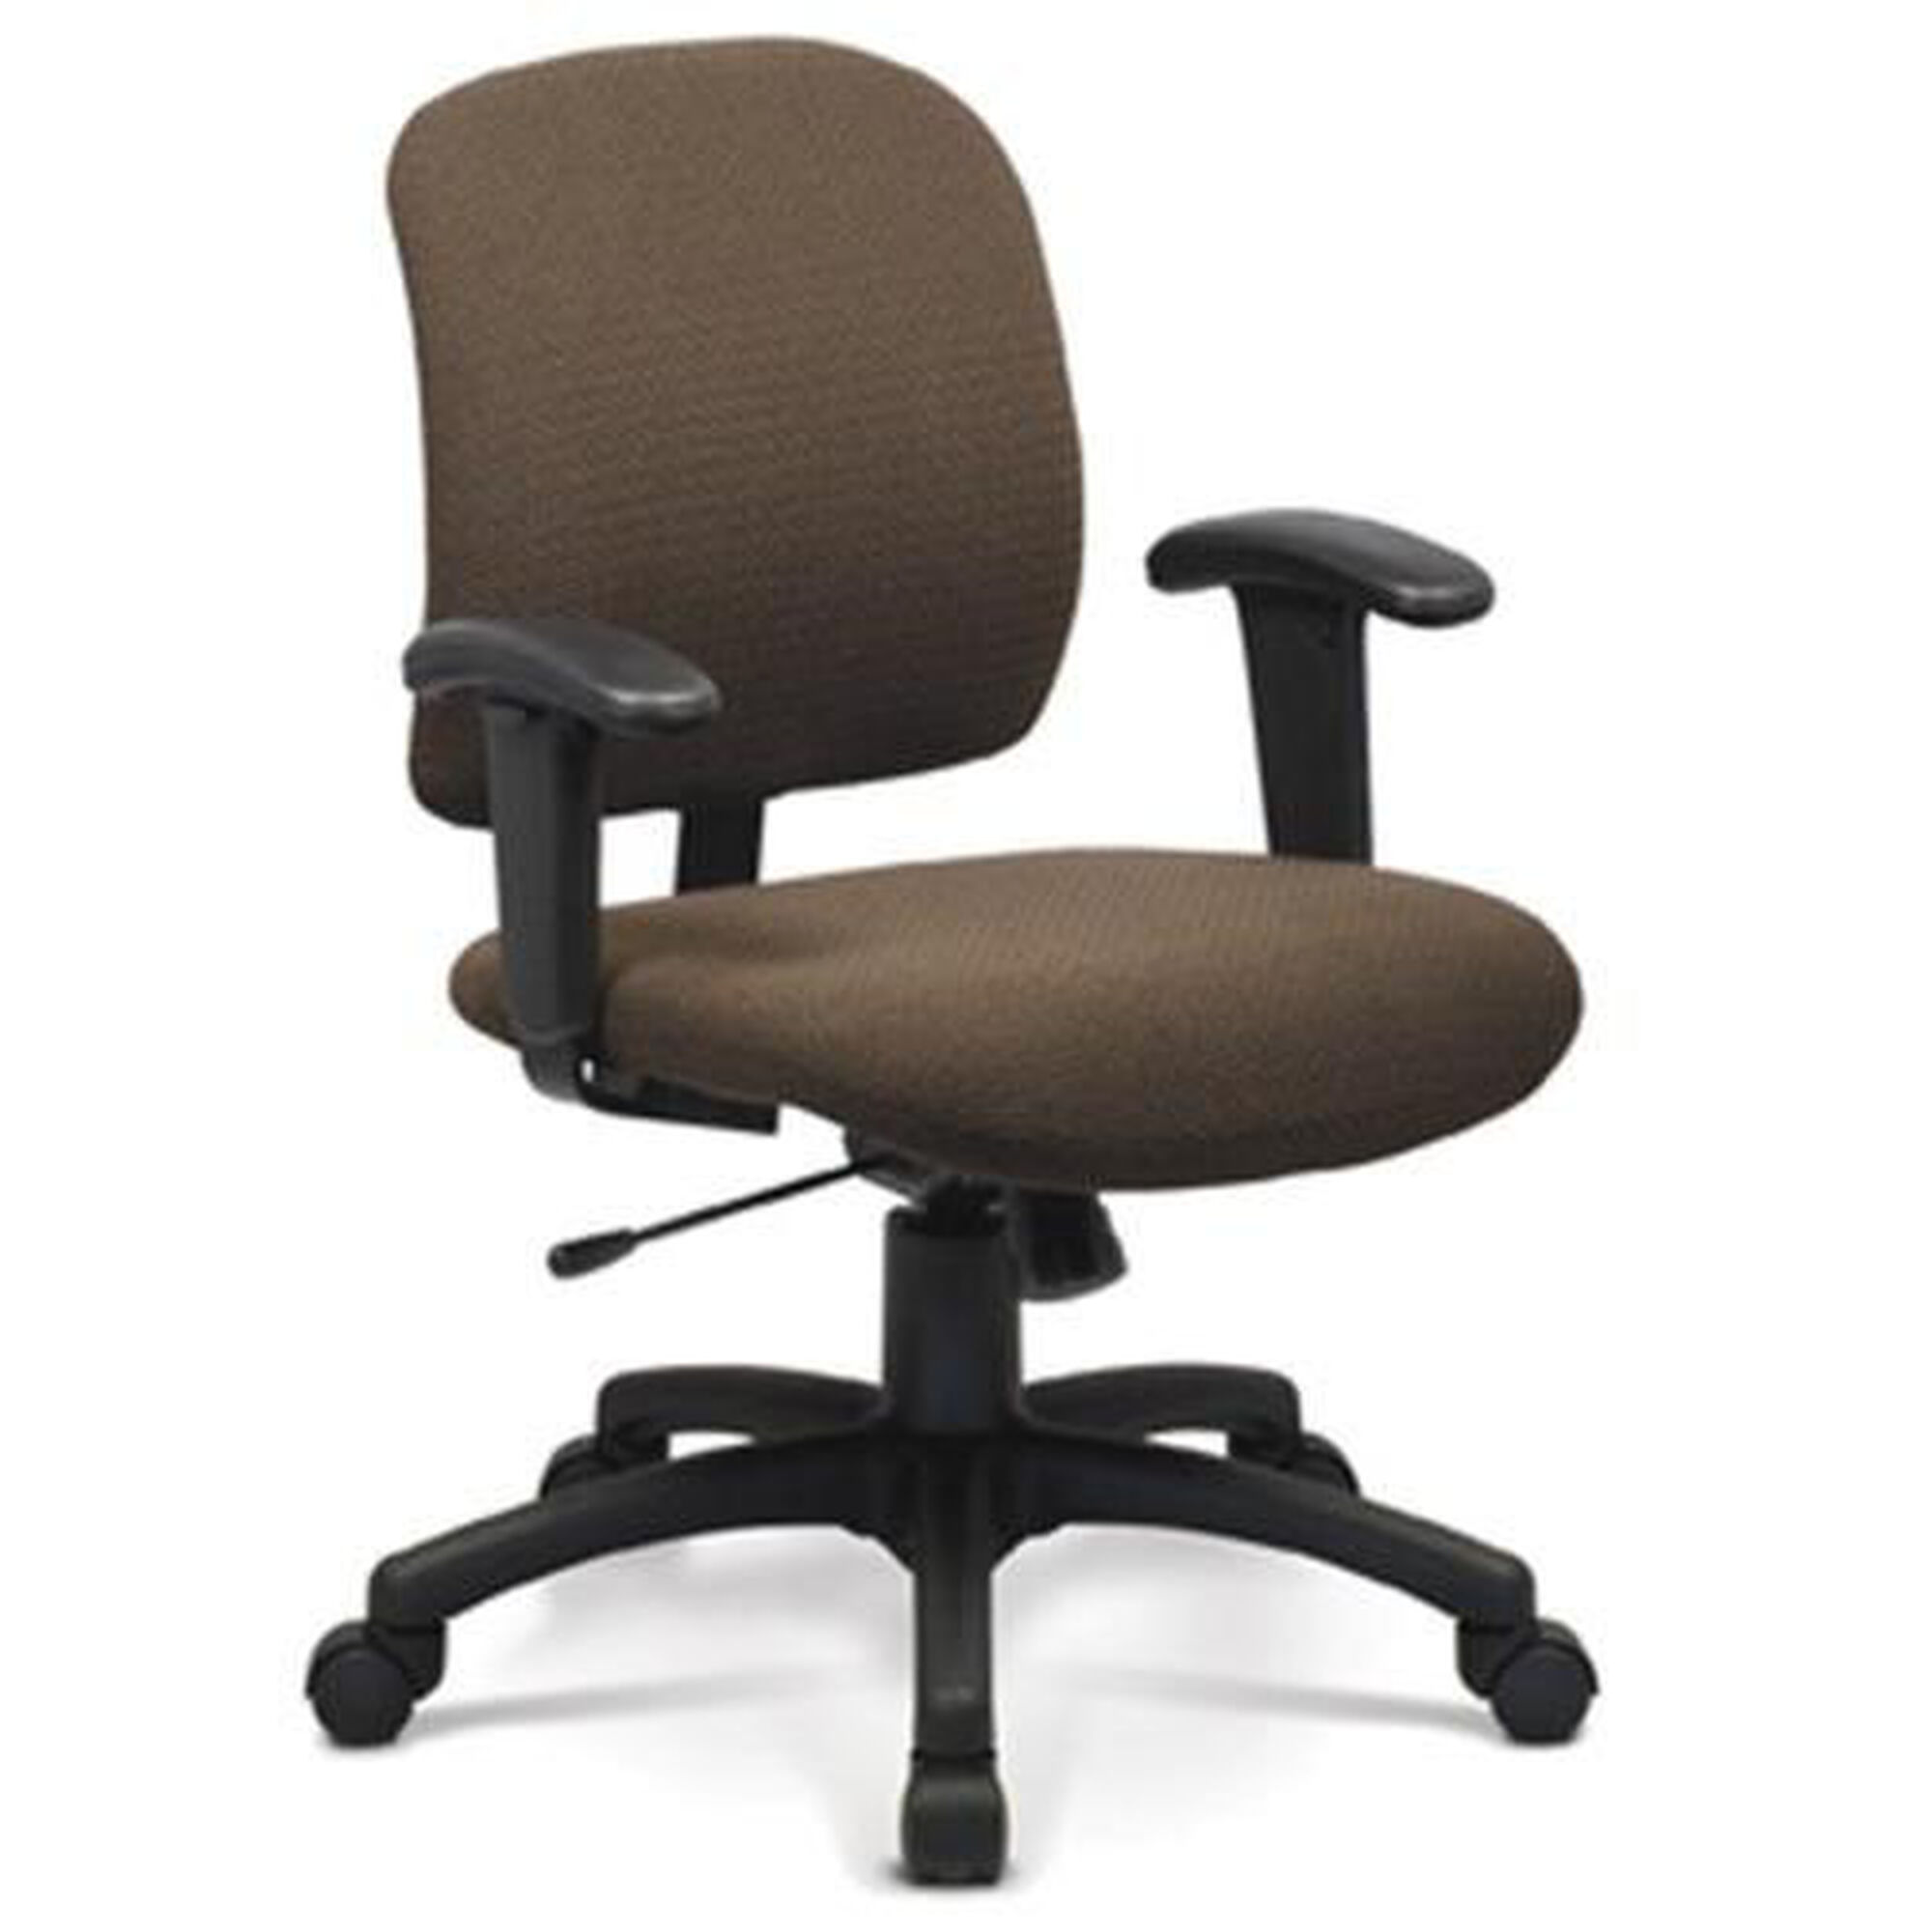 Art Design International : Art design international top task chair with low backrest